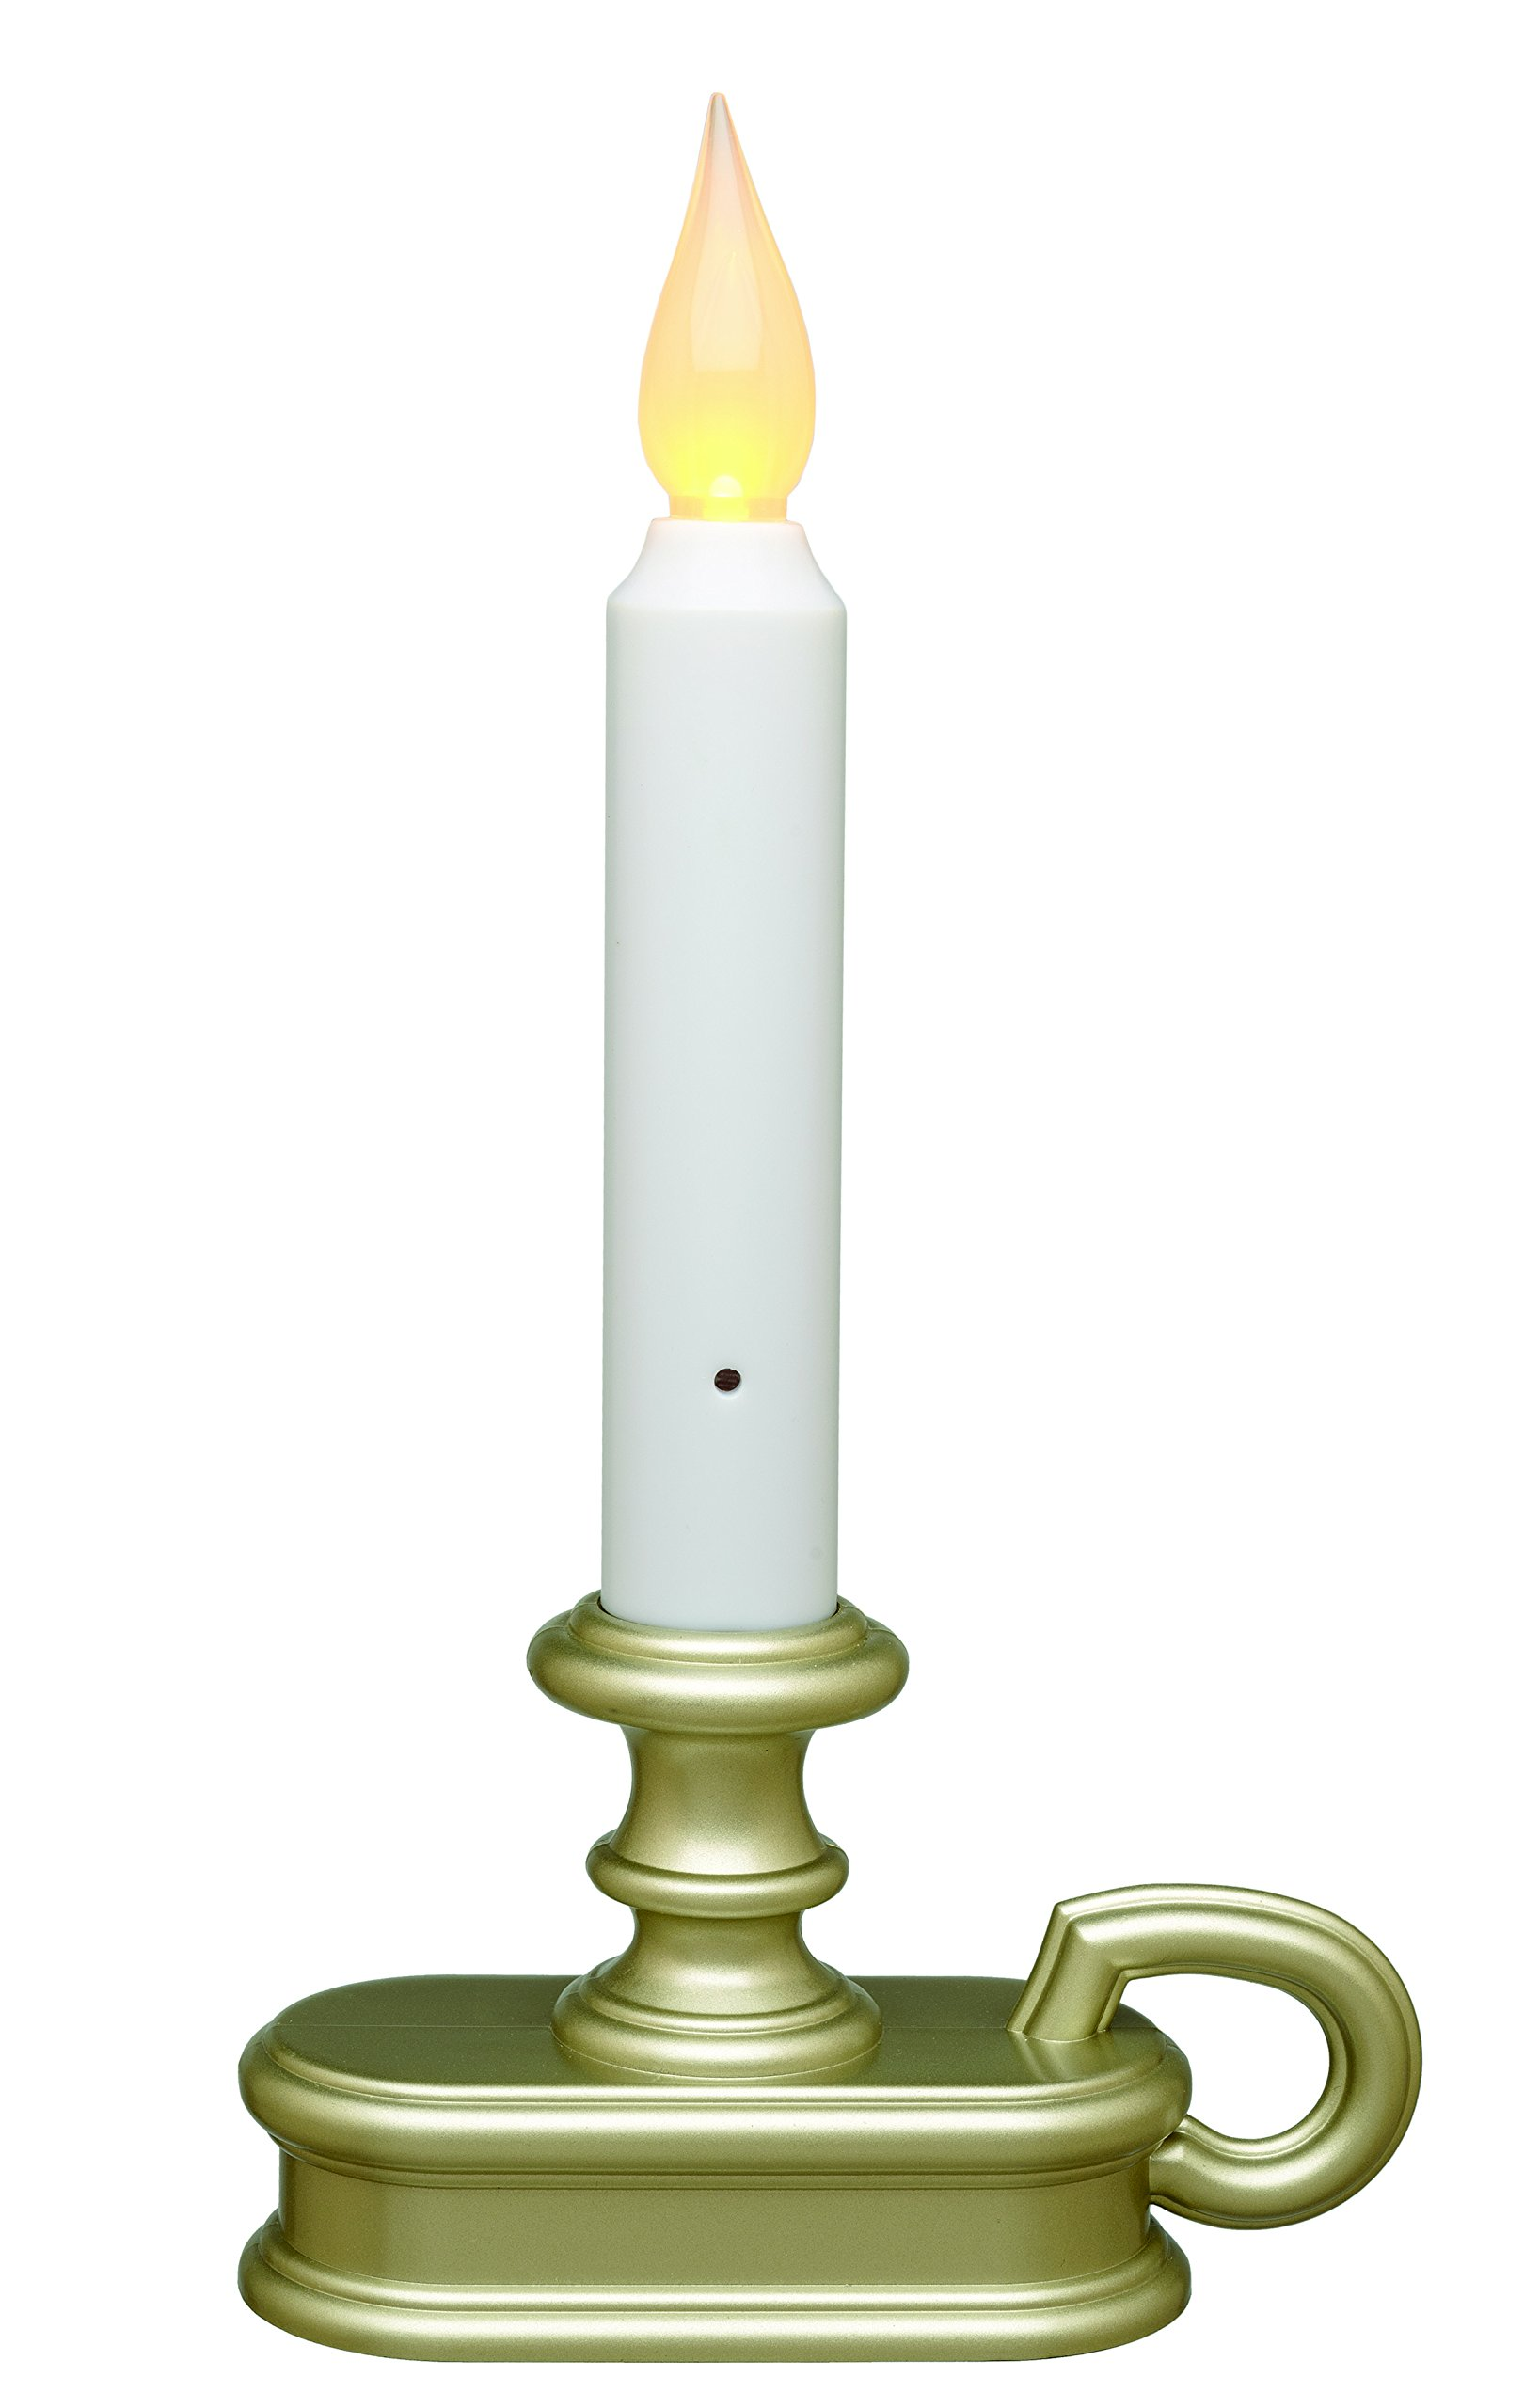 Battery Operated LED Dusk to Dawn Light Sensor Window Candle with Pewter Base Flicker and Full On Setting